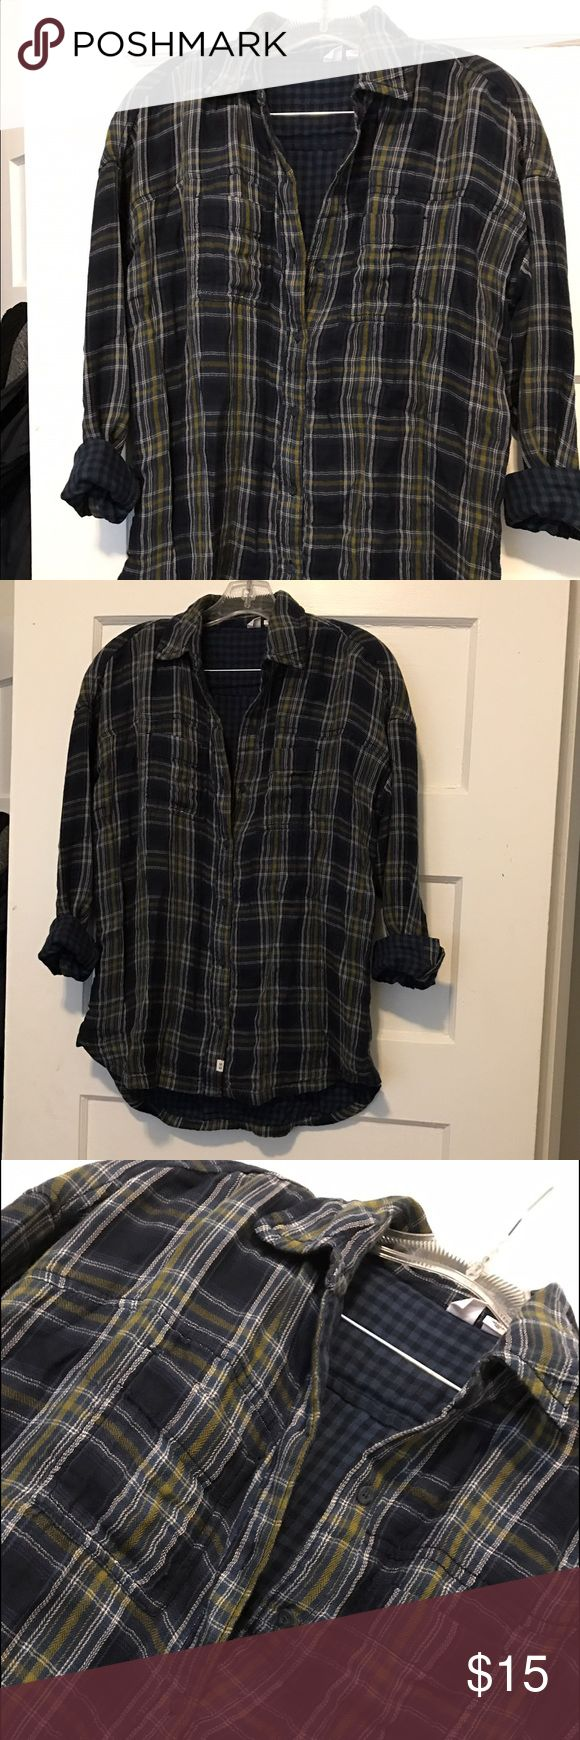 Melrose and Market ladies OVERSIZED plaid flannel! Size XS. Melrose and Market. Never worn out of the house. Double the plaid! Great with leggings or tight jeans with ripped knees :). This baby is 100% cotton so Machine Wash Cold (tumble dry low if you must dry) if you want it to keep its shape melrose and market Tops Tunics